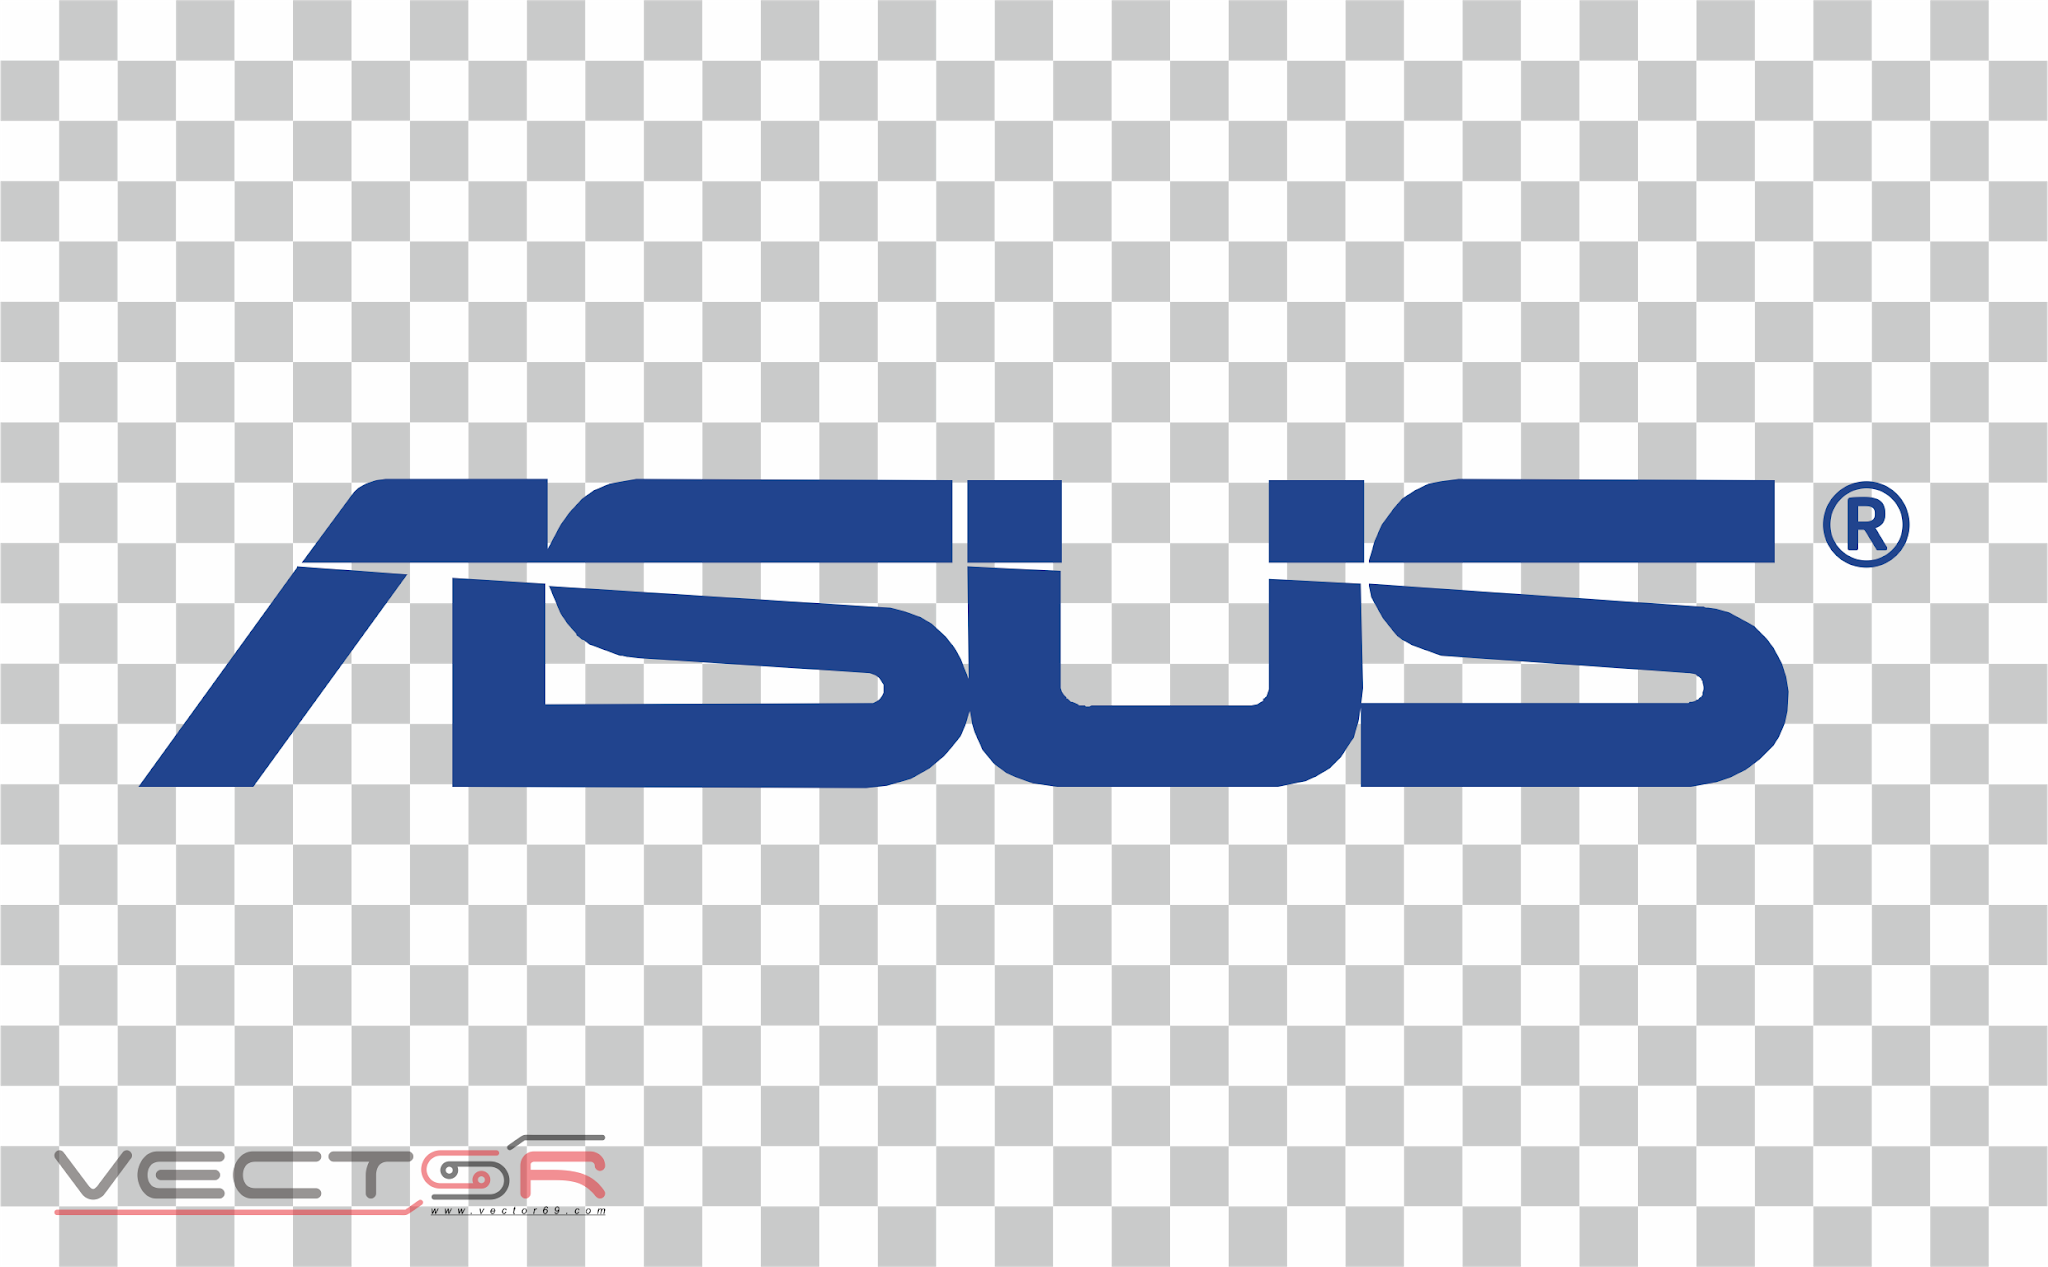 Asus Logo - Download Vector File PNG (Portable Network Graphics)